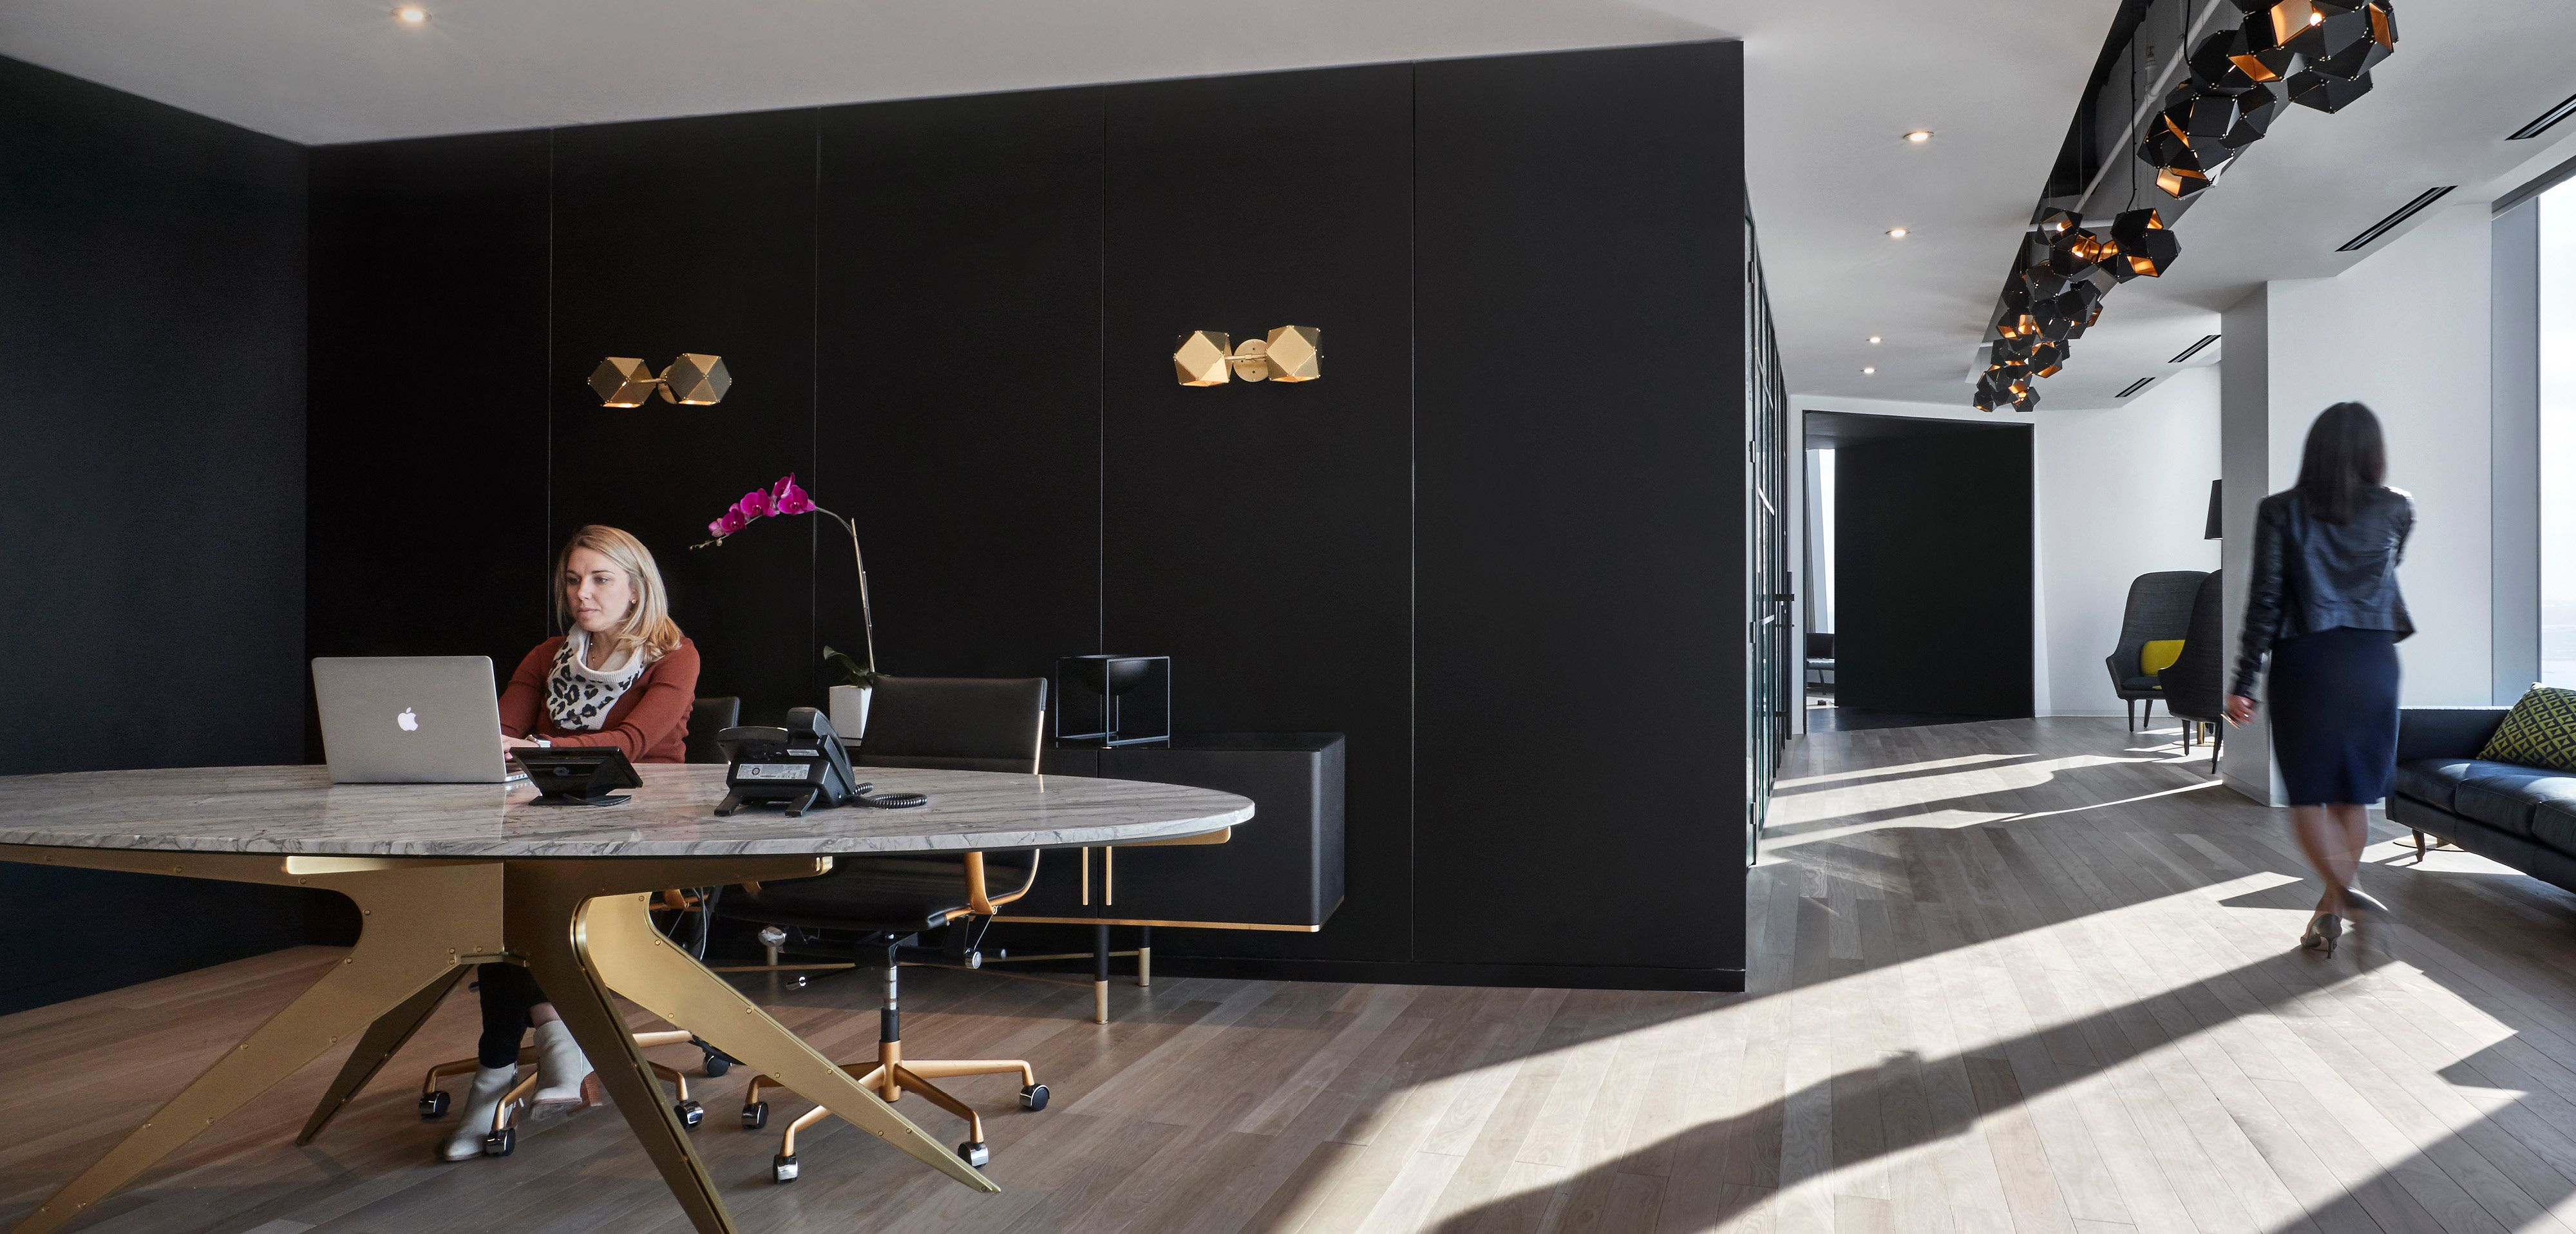 Custer Technology installed and engineered a wide variety of technology in the Steelcase NeoCon showroom Custer Projects Education